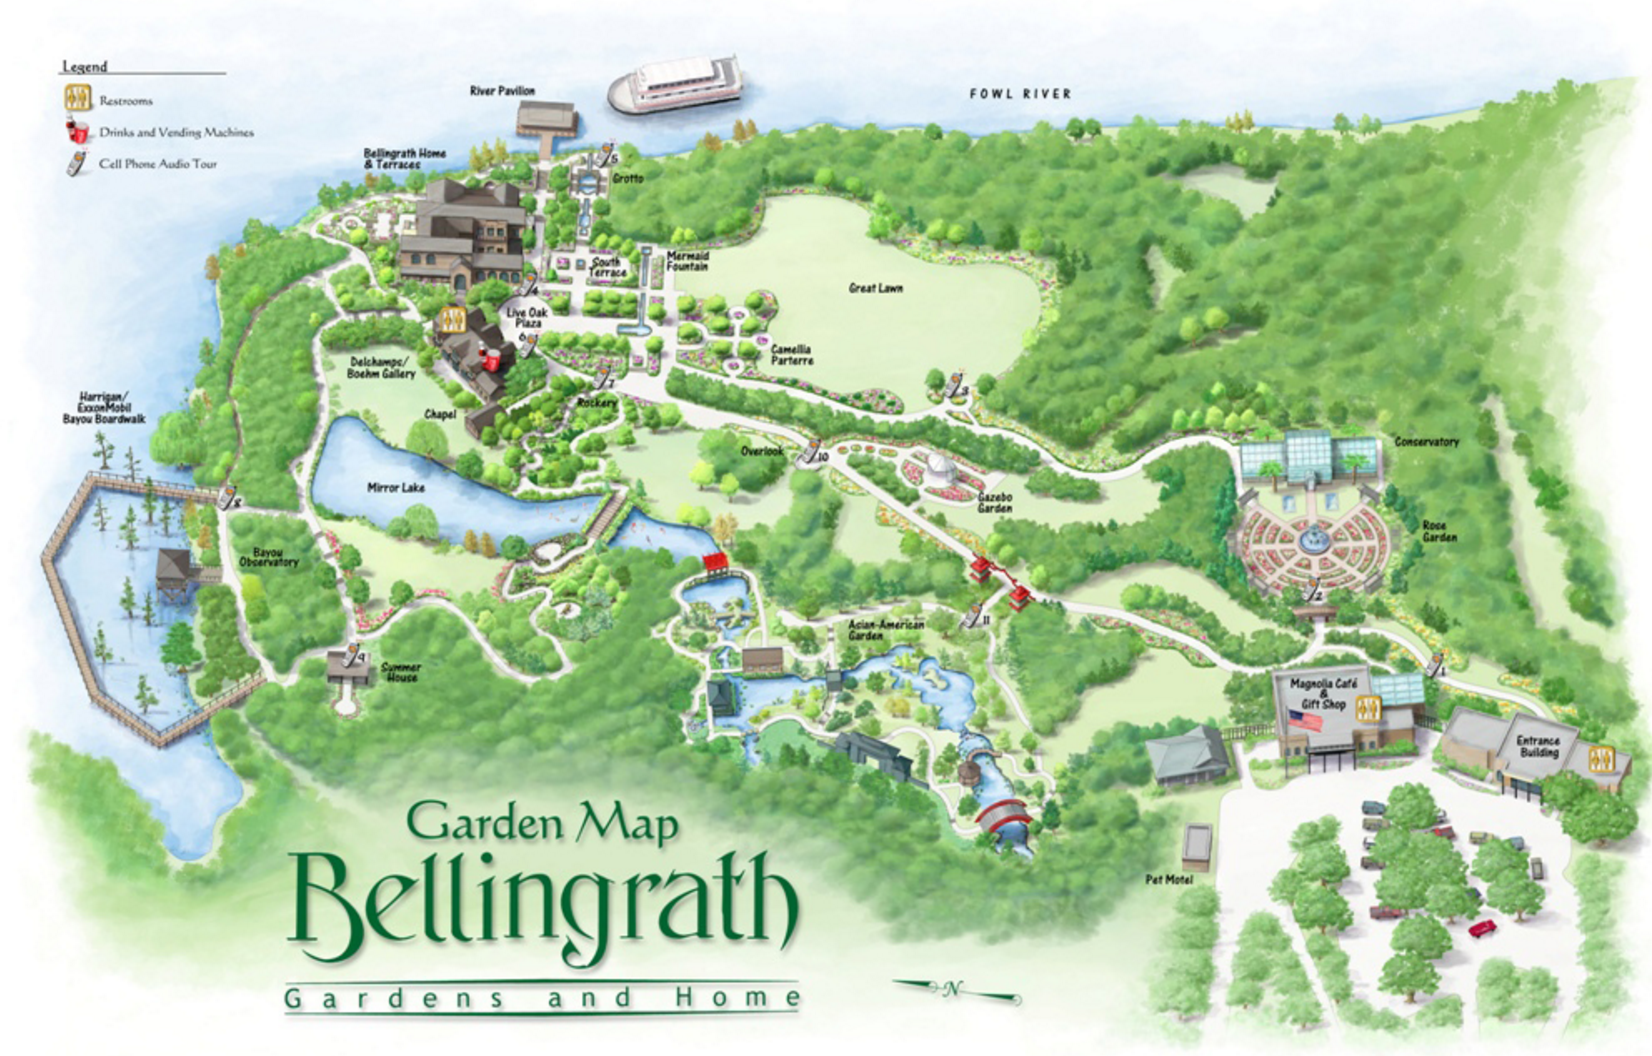 Wonderful Wednesdays in July at Bellingrath Gardens and Home.